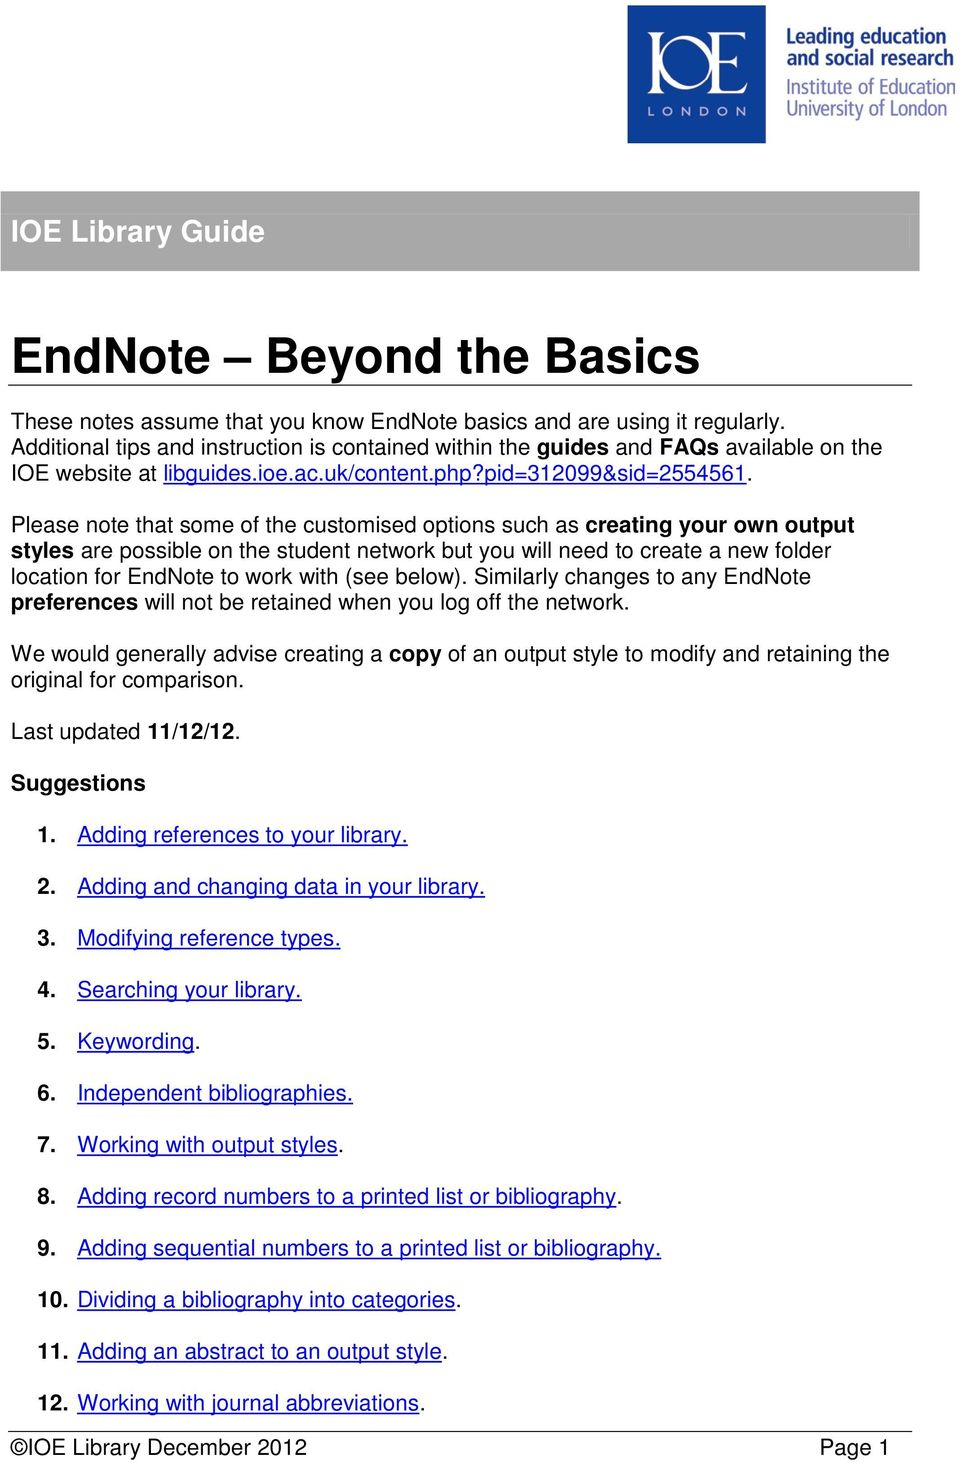 Please note that some of the customised options such as creating your own output styles are possible on the student network but you will need to create a new folder location for EndNote to work with